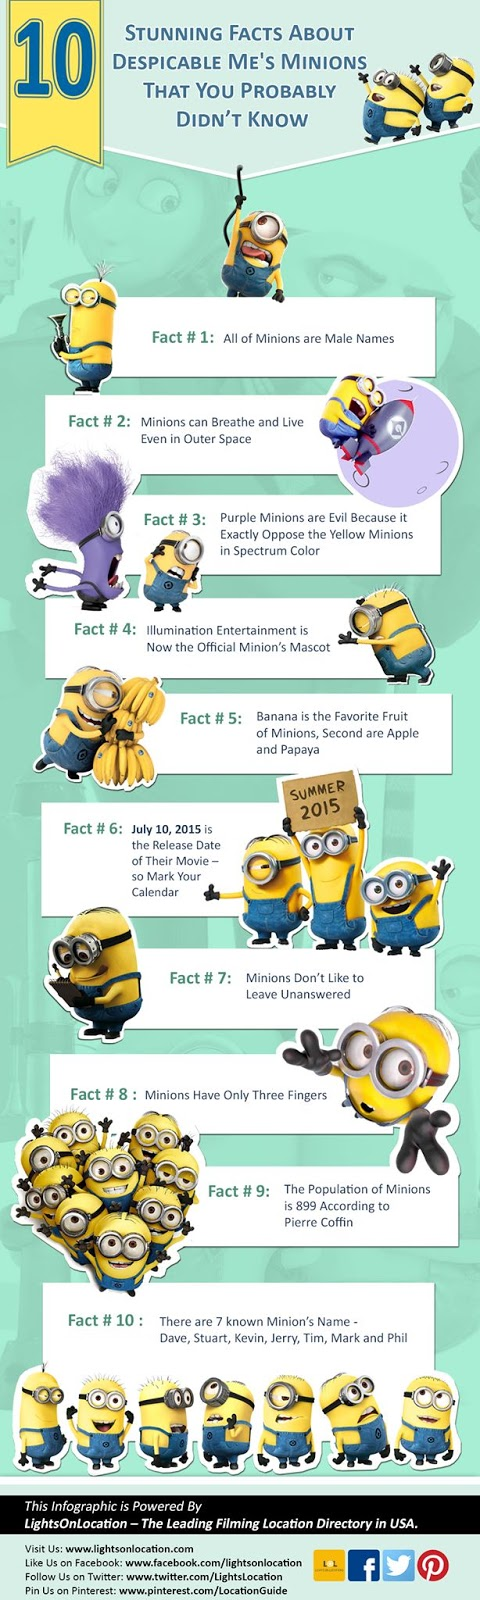 10 SURPRISING FACTS ABOUT DESPICABLE ME'S MINIONS